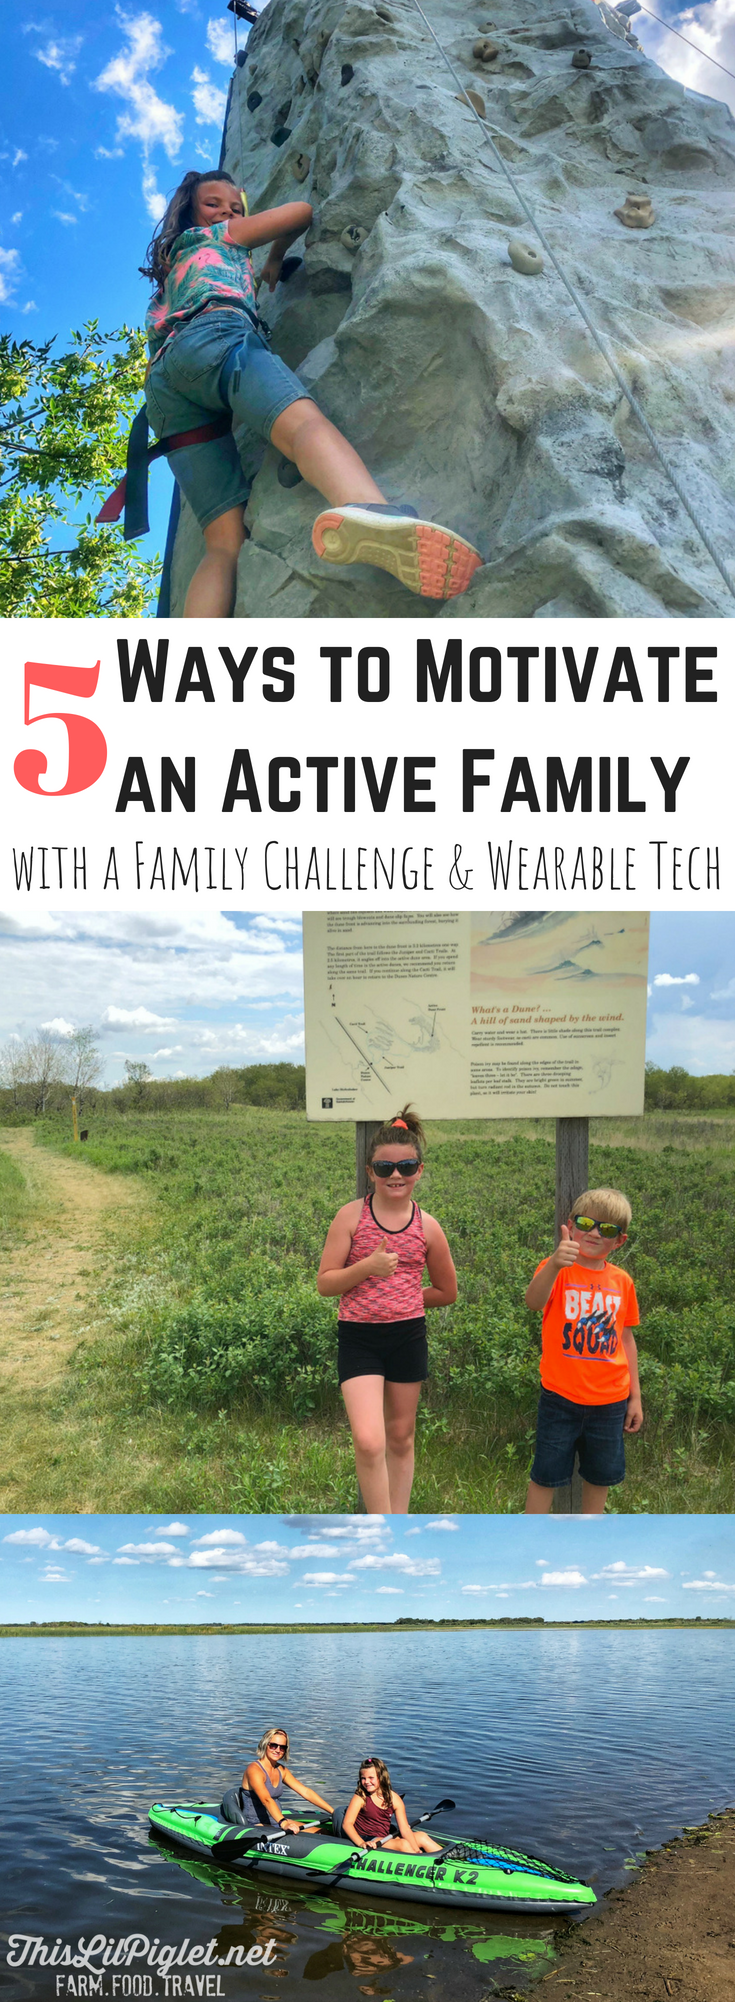 5 Ways to Motivate an Active Family with a Fit Family Challenge and Wearable Tech // thislilpiglet.net